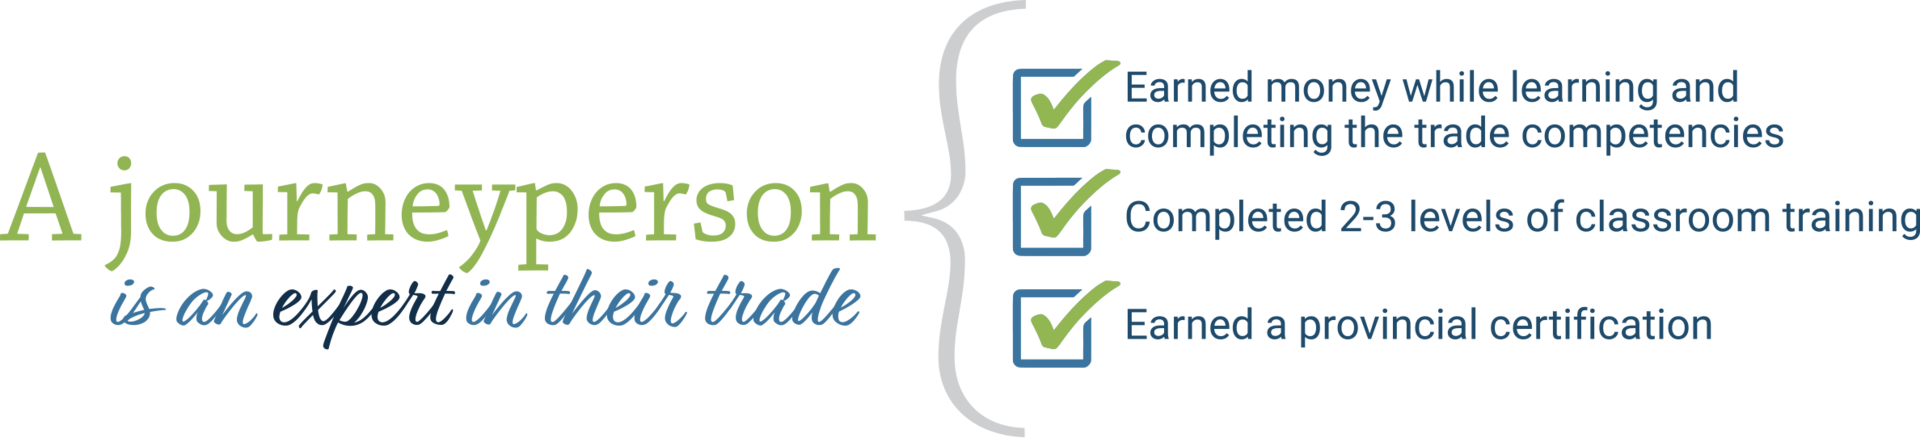 A journeyperson is an expert in their trade. Earned money while learning and completing the trade competencies. Completed 2-3 levels of classroom training. Passed the final exam and earned a provincial certification.